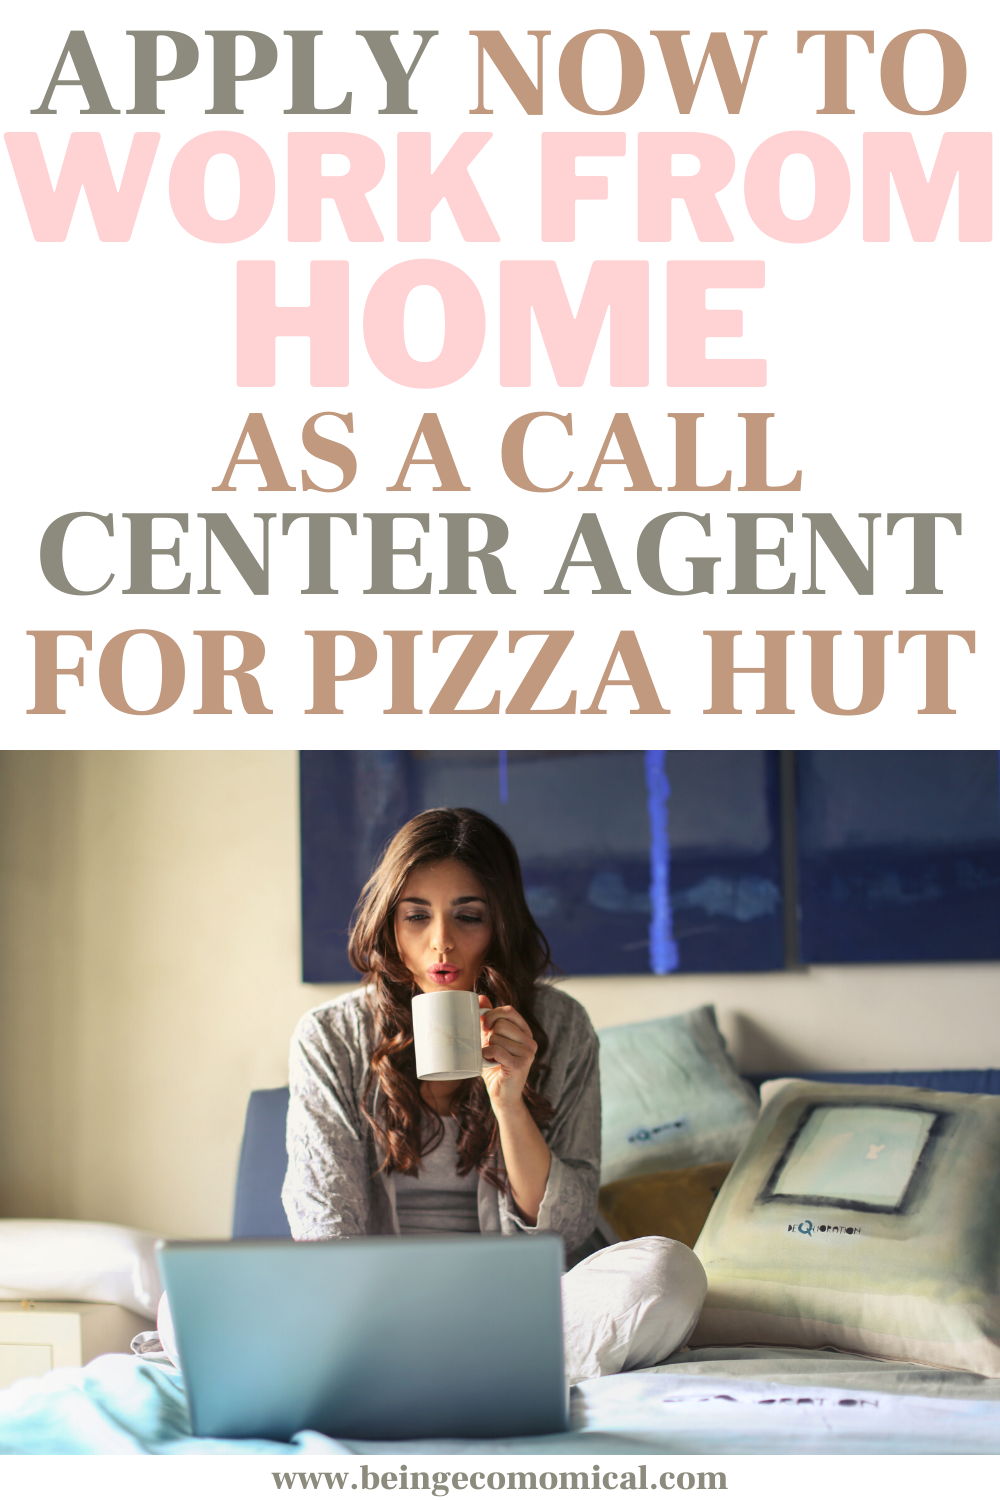 Earn Extra Income From Home As A Call Agent With Pizza Hut In 2020 Working From Home Work From Home Jobs Legitimate Work From Home,Electric Grills Outdoor